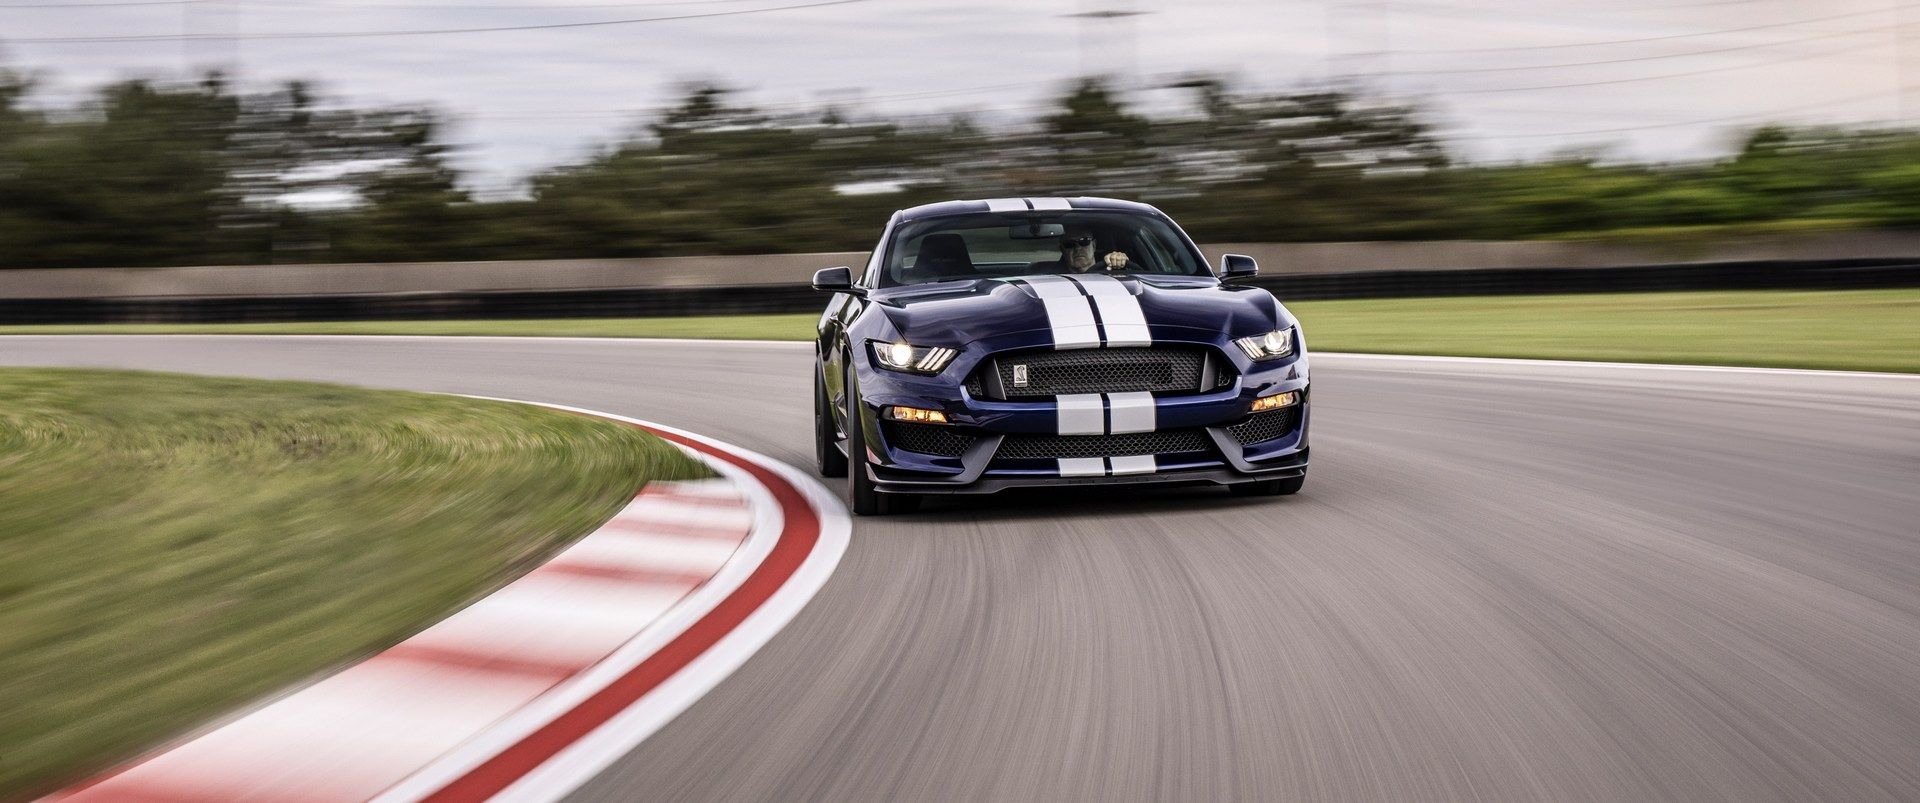 2019 Ford Mustang Configurator Goes Live Ecoboost Fastback